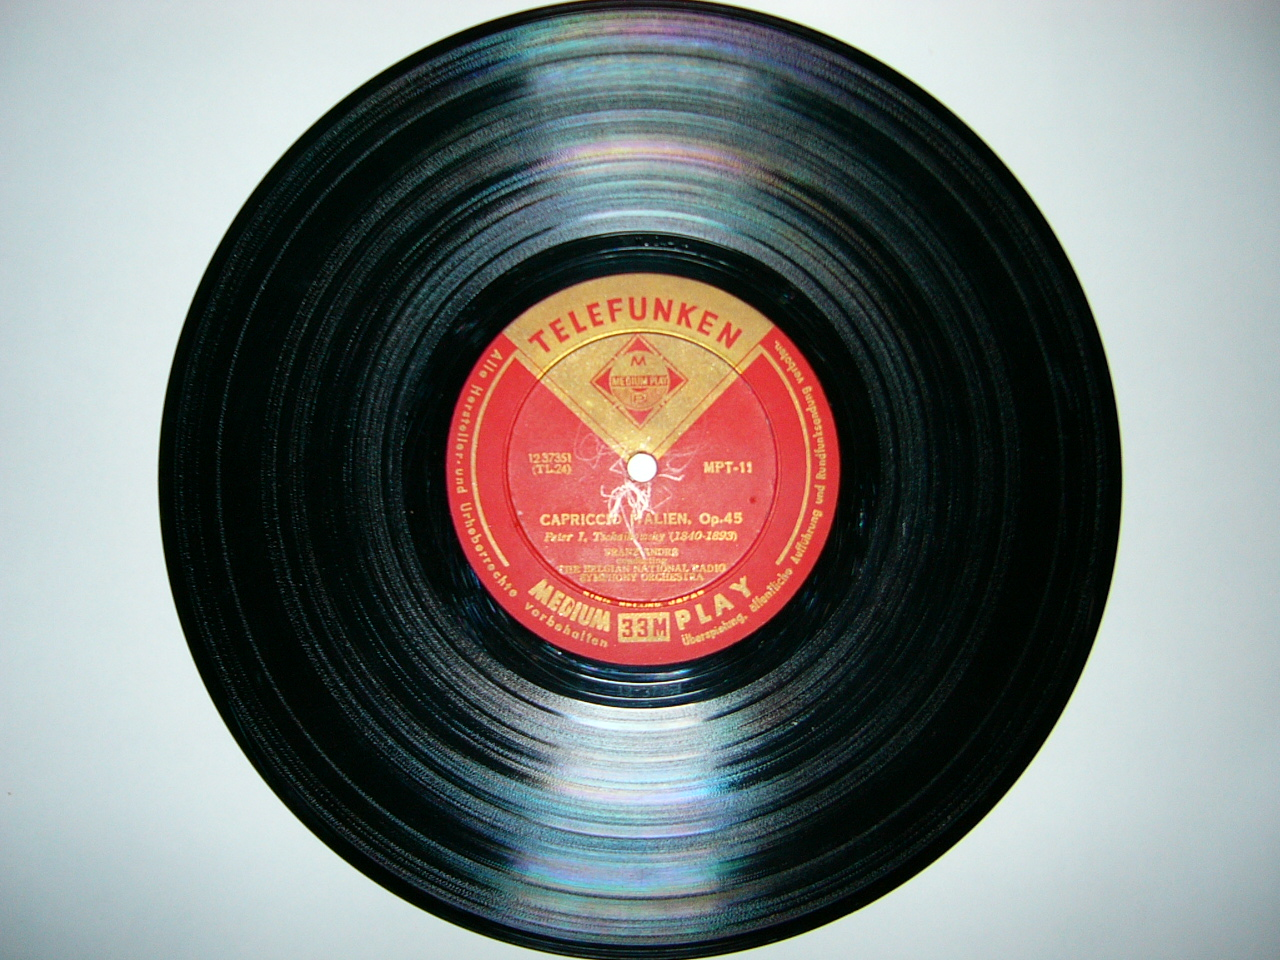 February 15, 1972: Copyright Protection for Sound Recordings